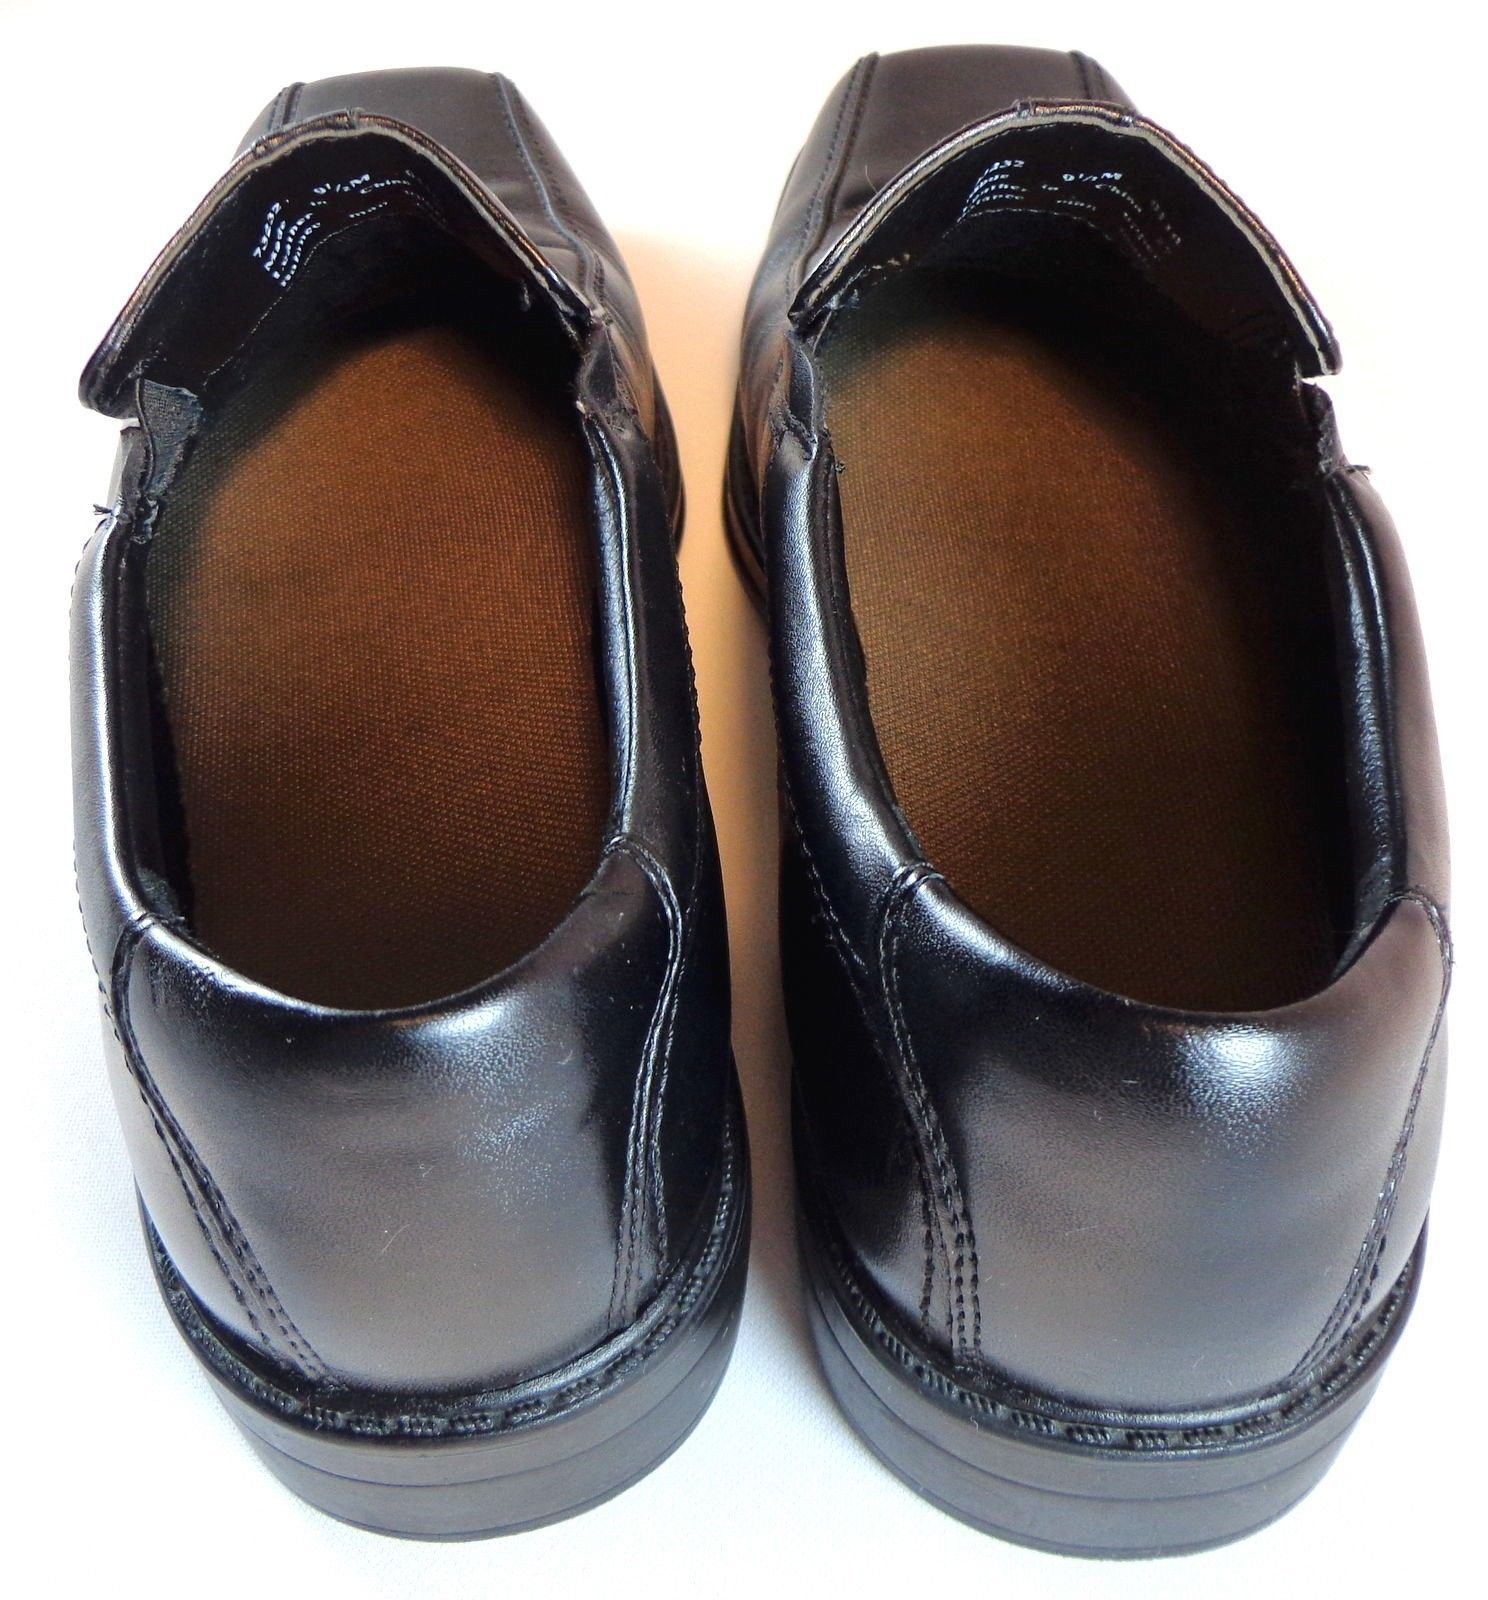 Clarks Mens Black Leather Loafers Size 9.5 M and 50 similar